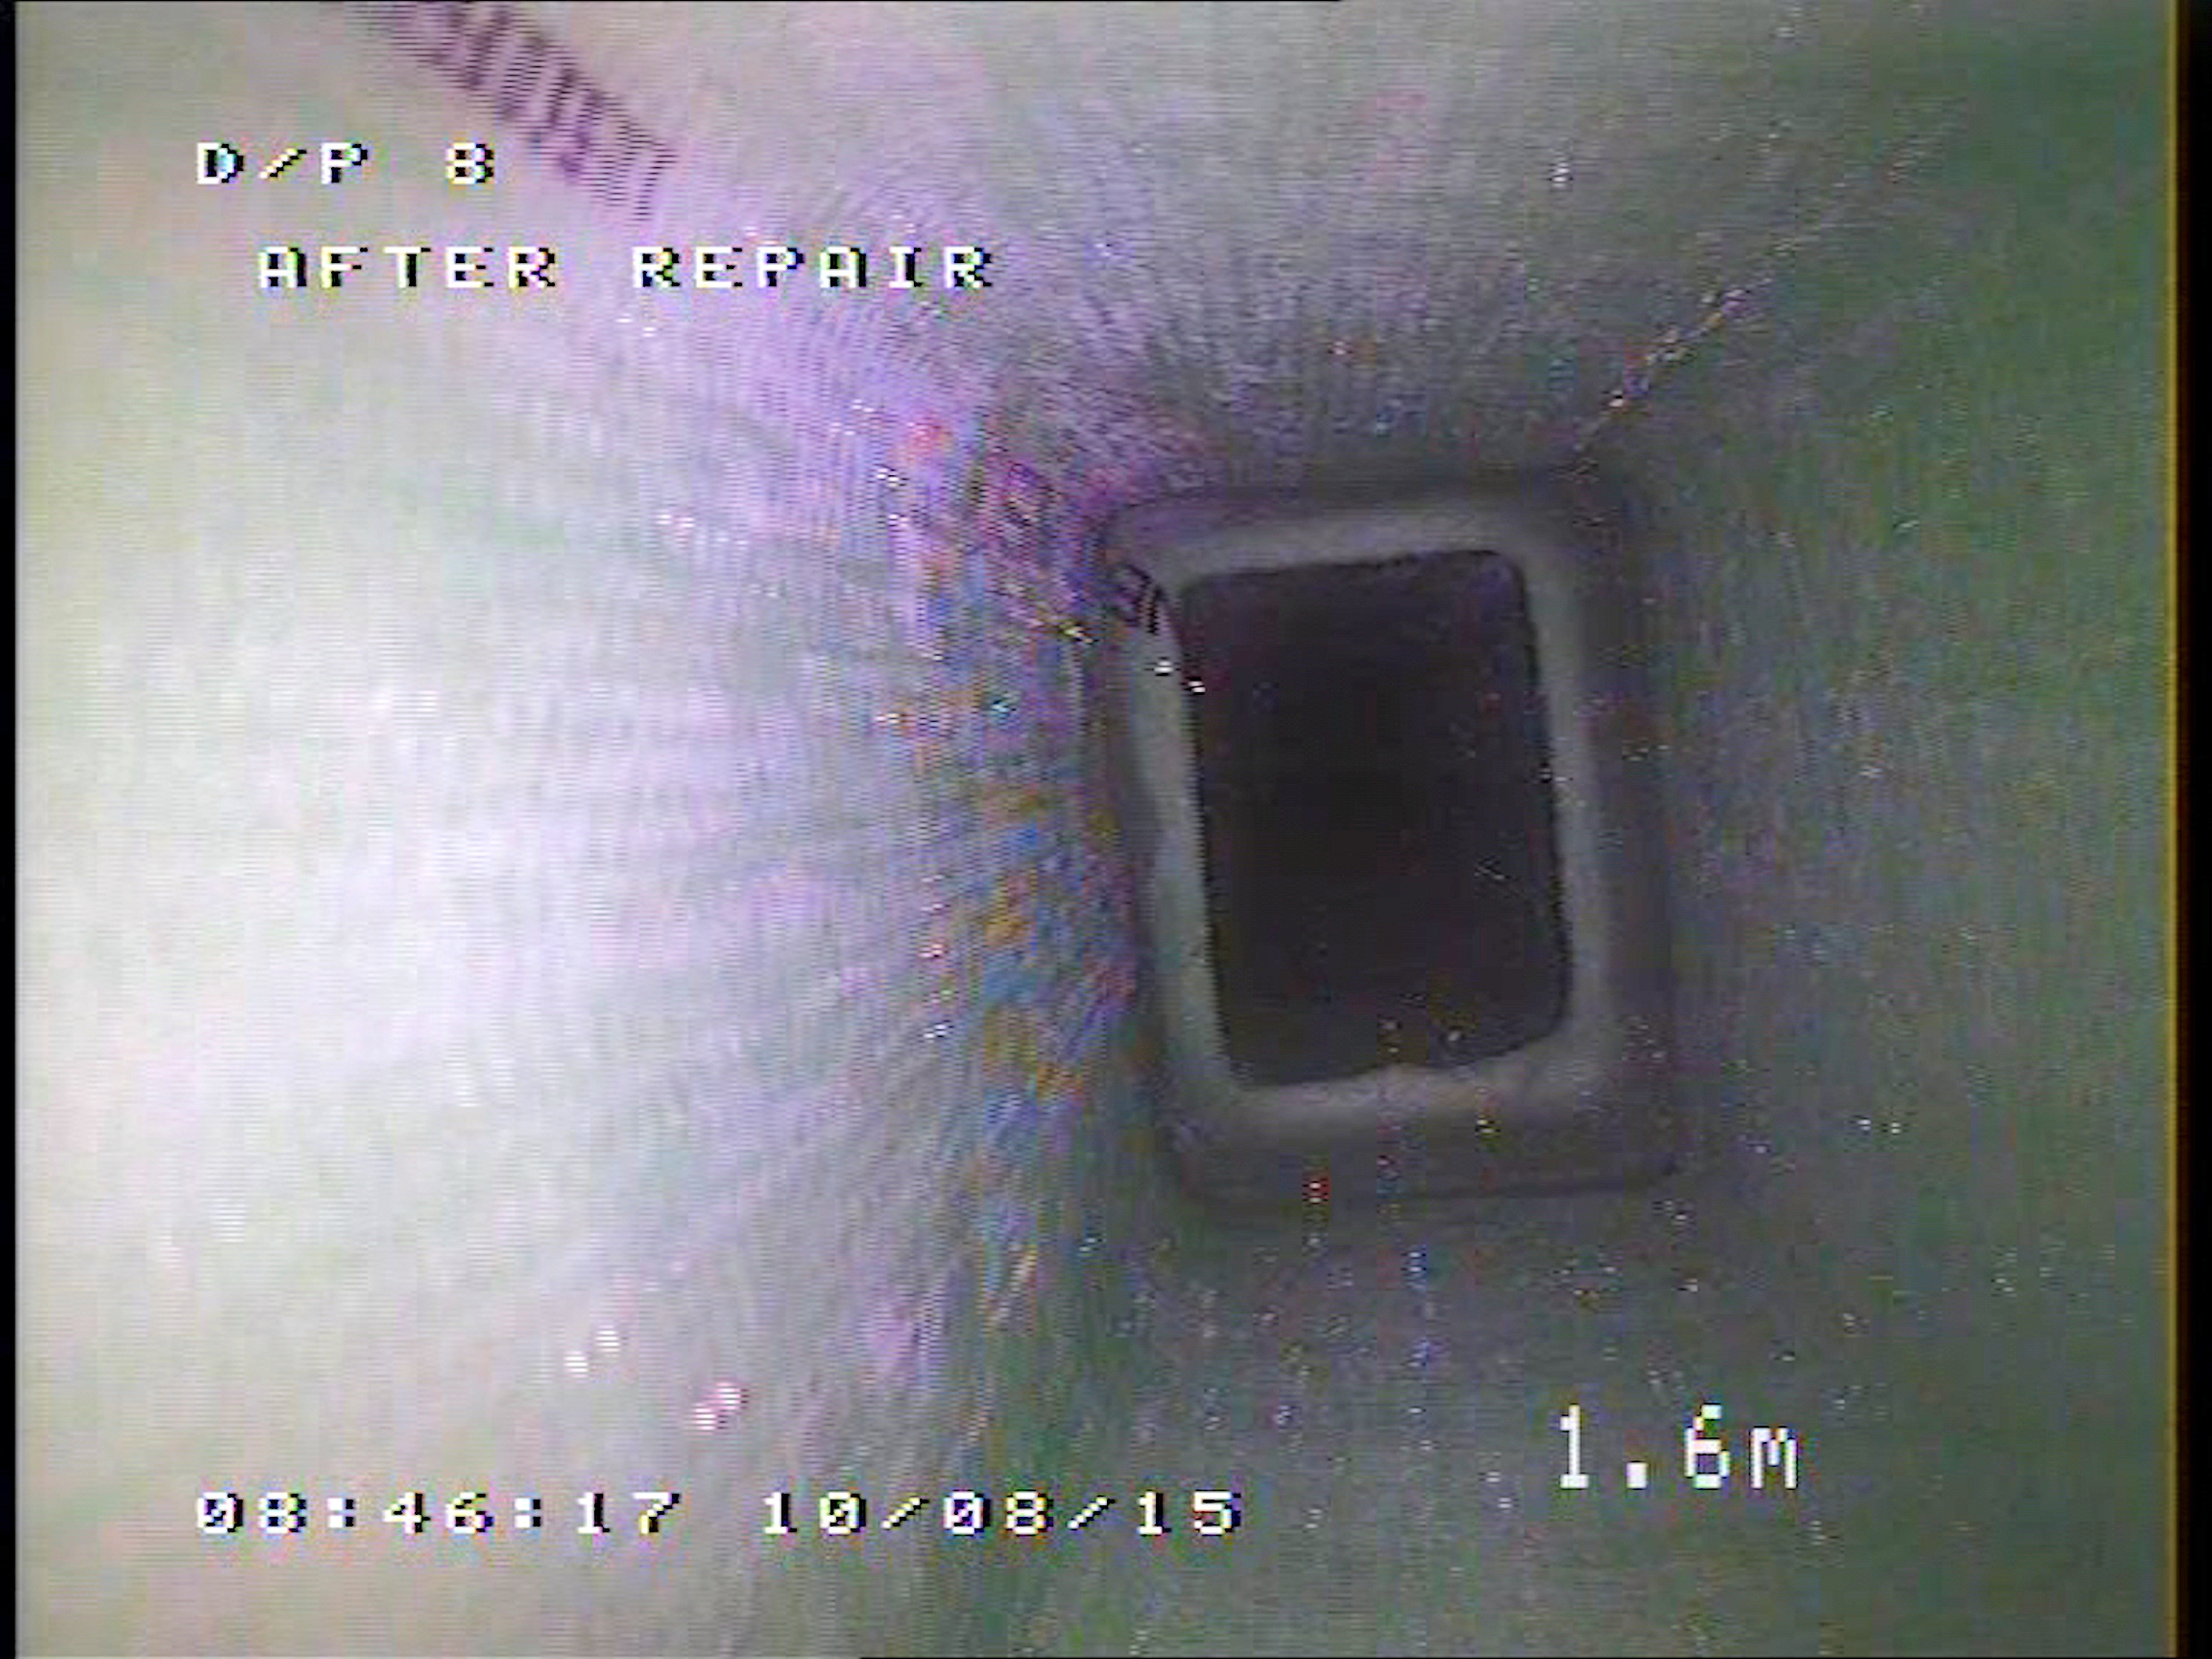 CCTV survey of the lined downpipes